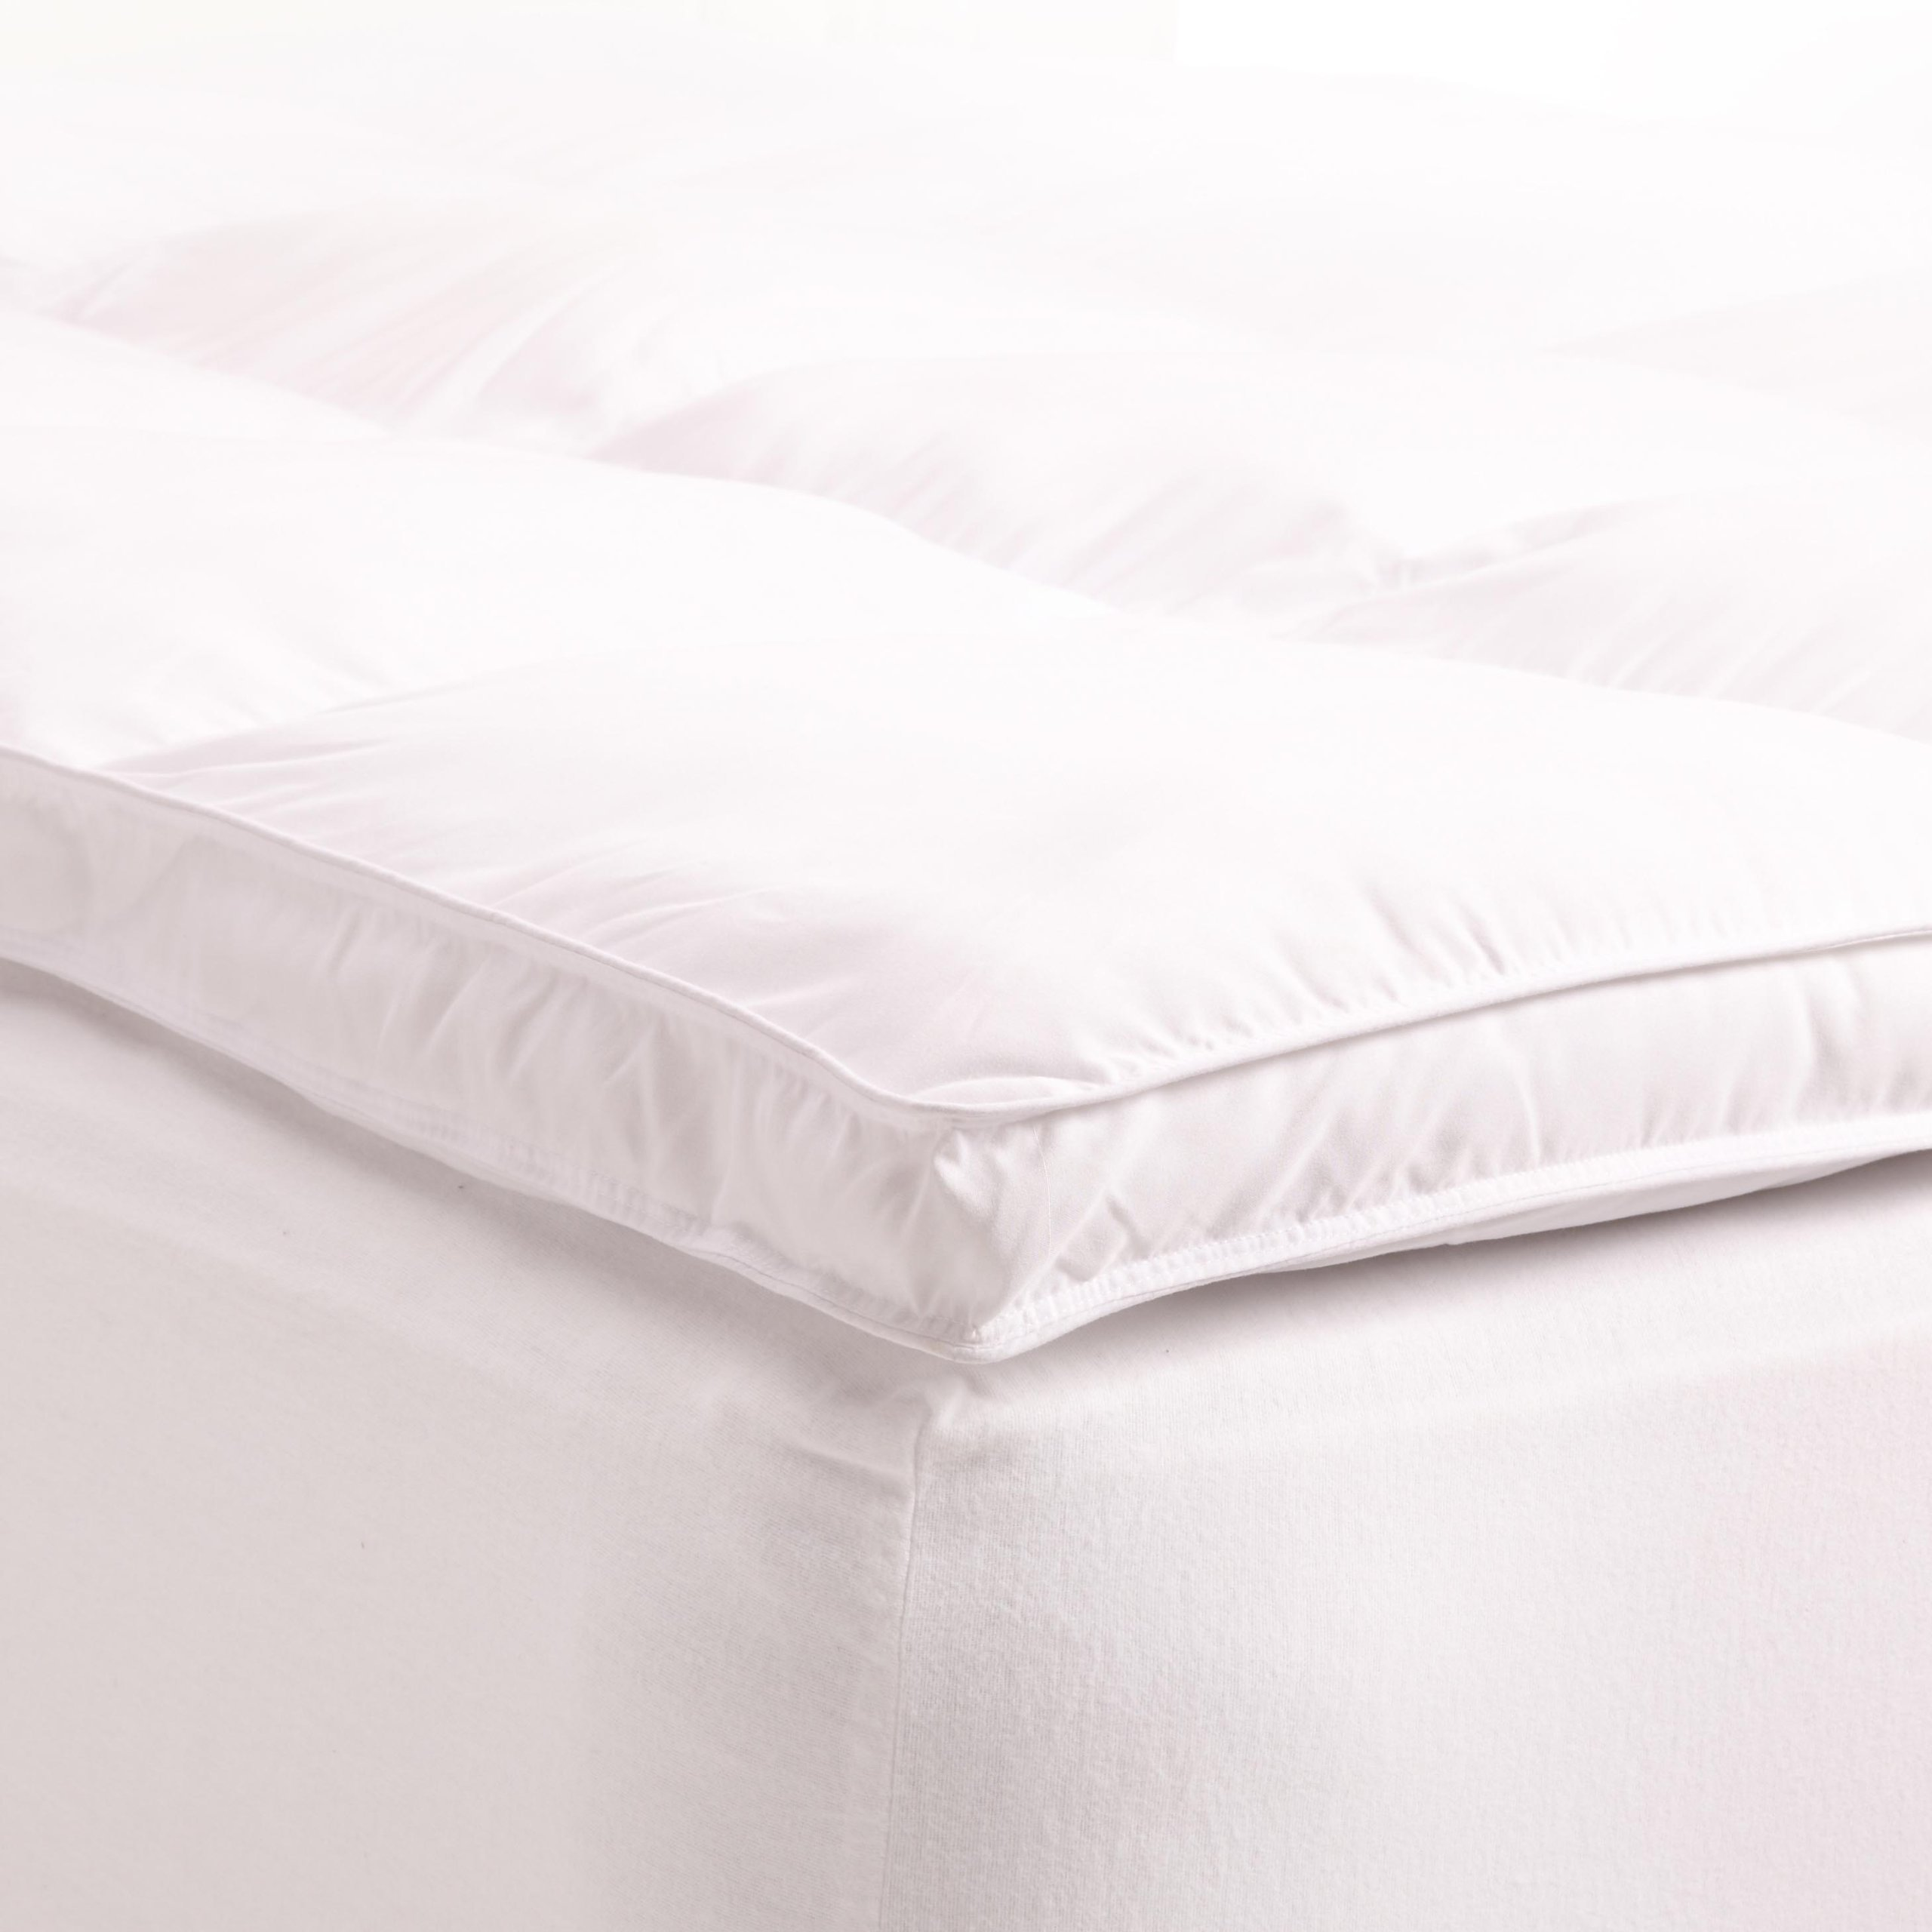 Superior Queen Mattress Topper, Hypoallergenic White Down Alternative Featherbed Mattress Pad - Plush, Overfilled, and 2'' Thick